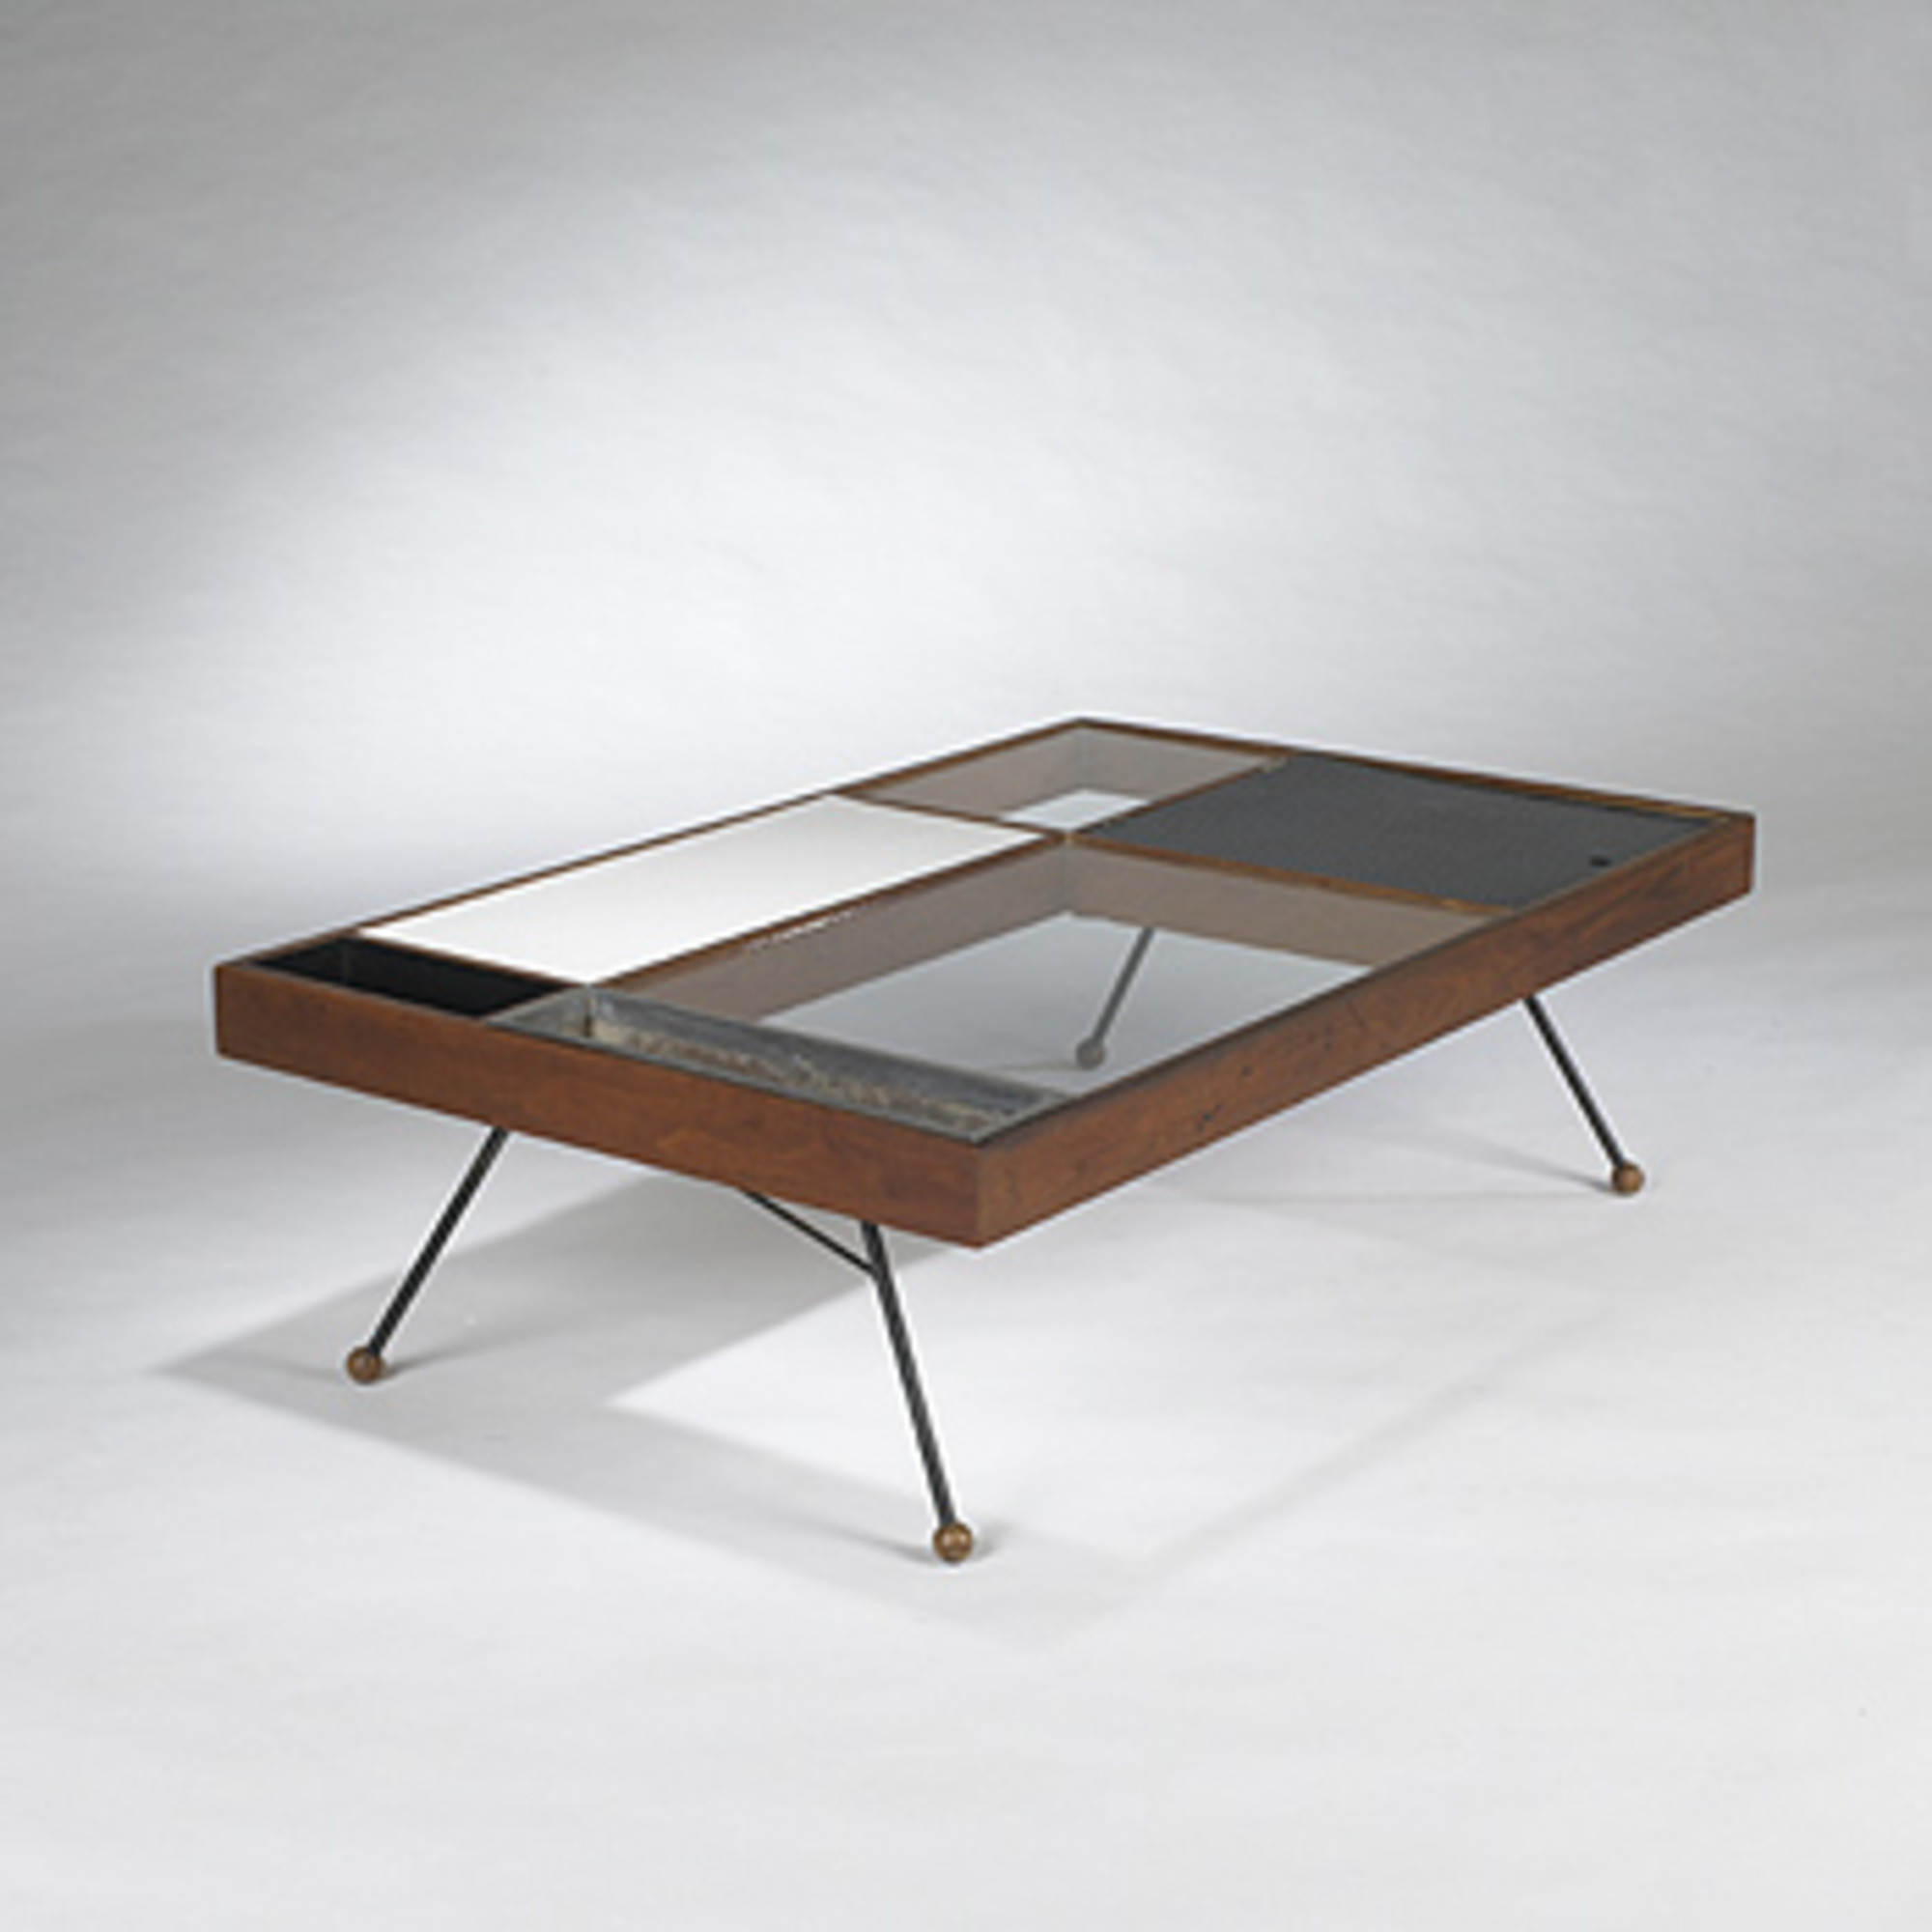 464: MILO BAUGHMAN, Coffee Table U003c Modern Design, 28 March 2004 U003c Auctions  | Wright: Auctions Of Art And Design